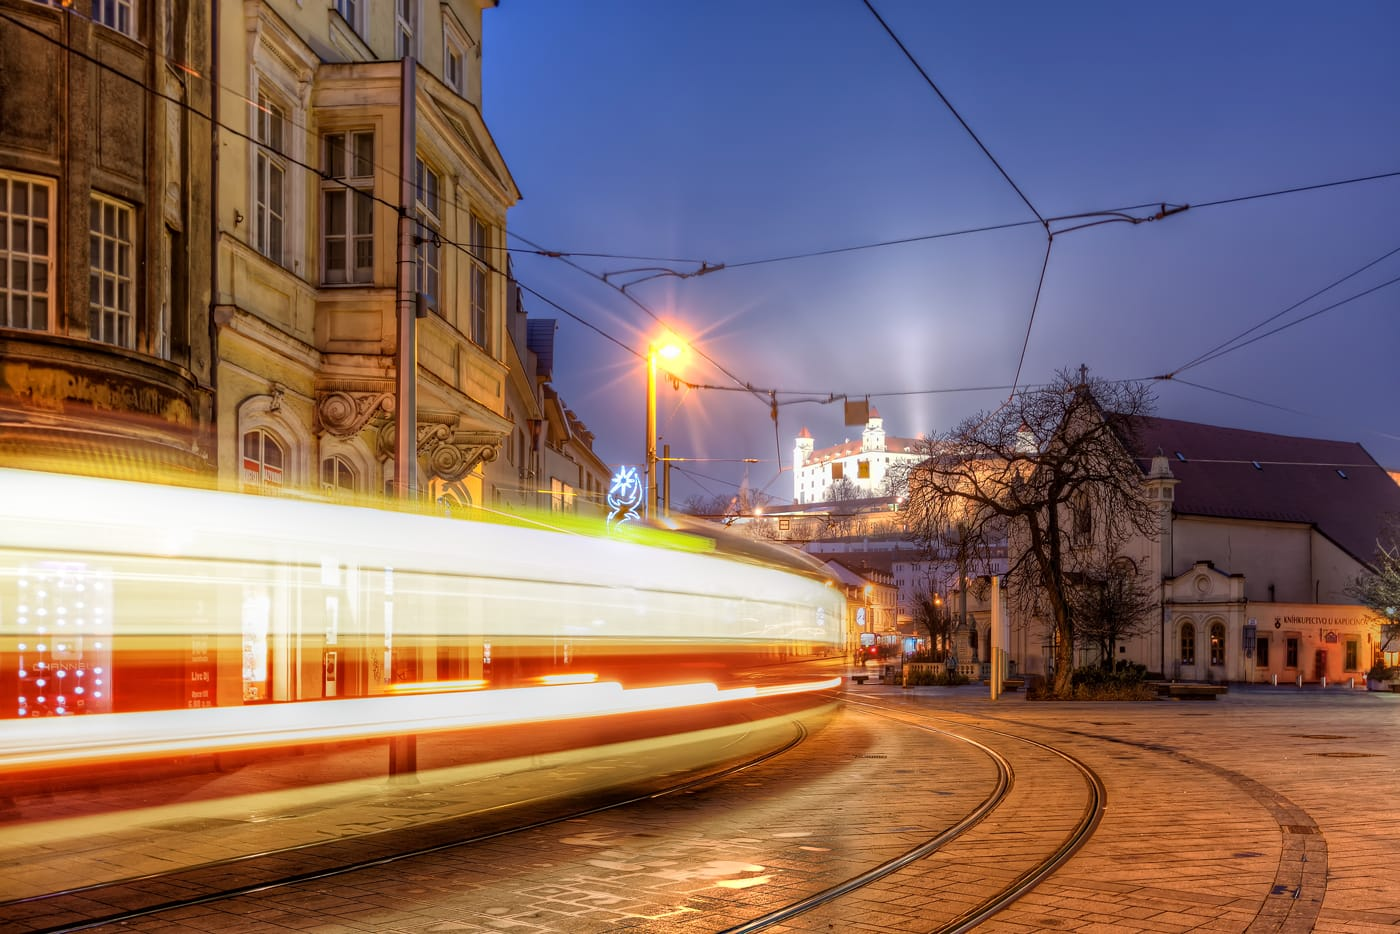 Tram passing Hurban Square (Hurbanovo námestie) in the Bratislava Old Town. In the background is the castle and church of St Stephen the King